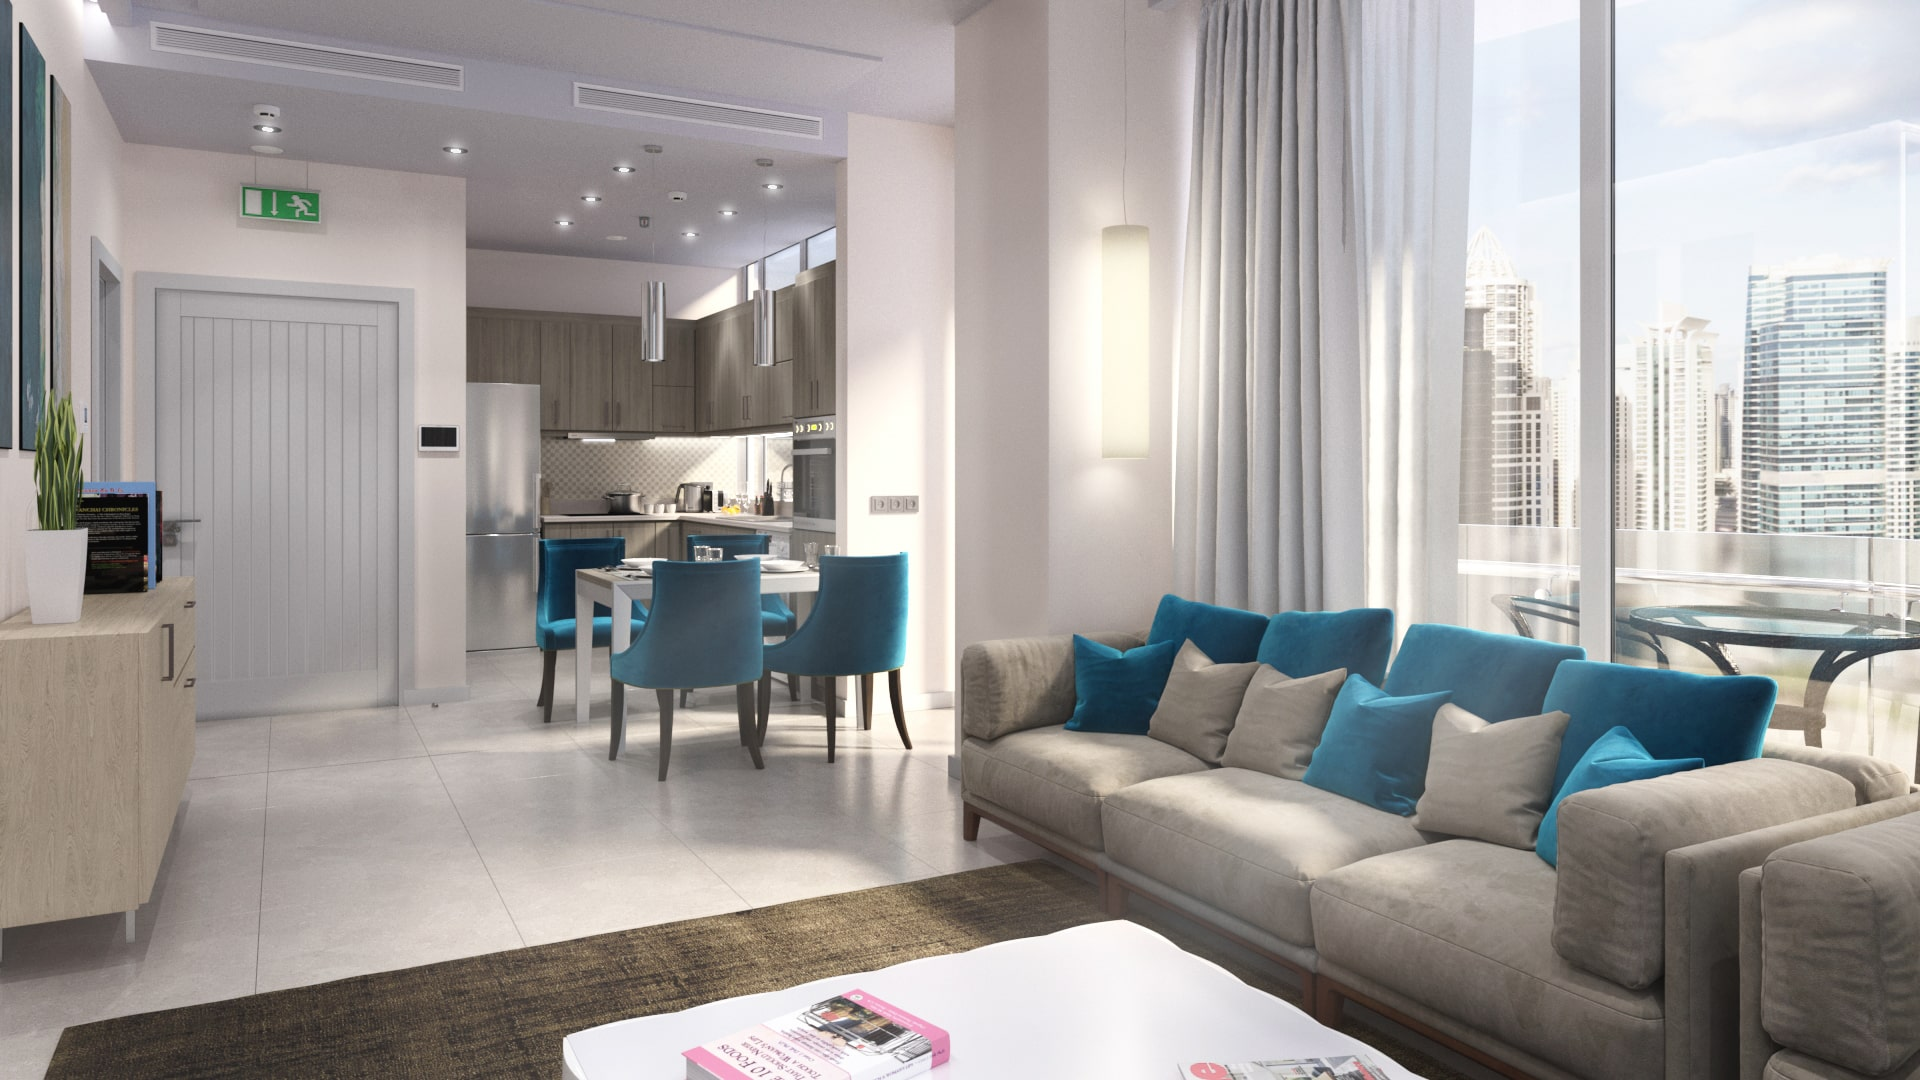 Seven city apartments JLT- Jumeirah Lake Towers. Property for sale in dubai